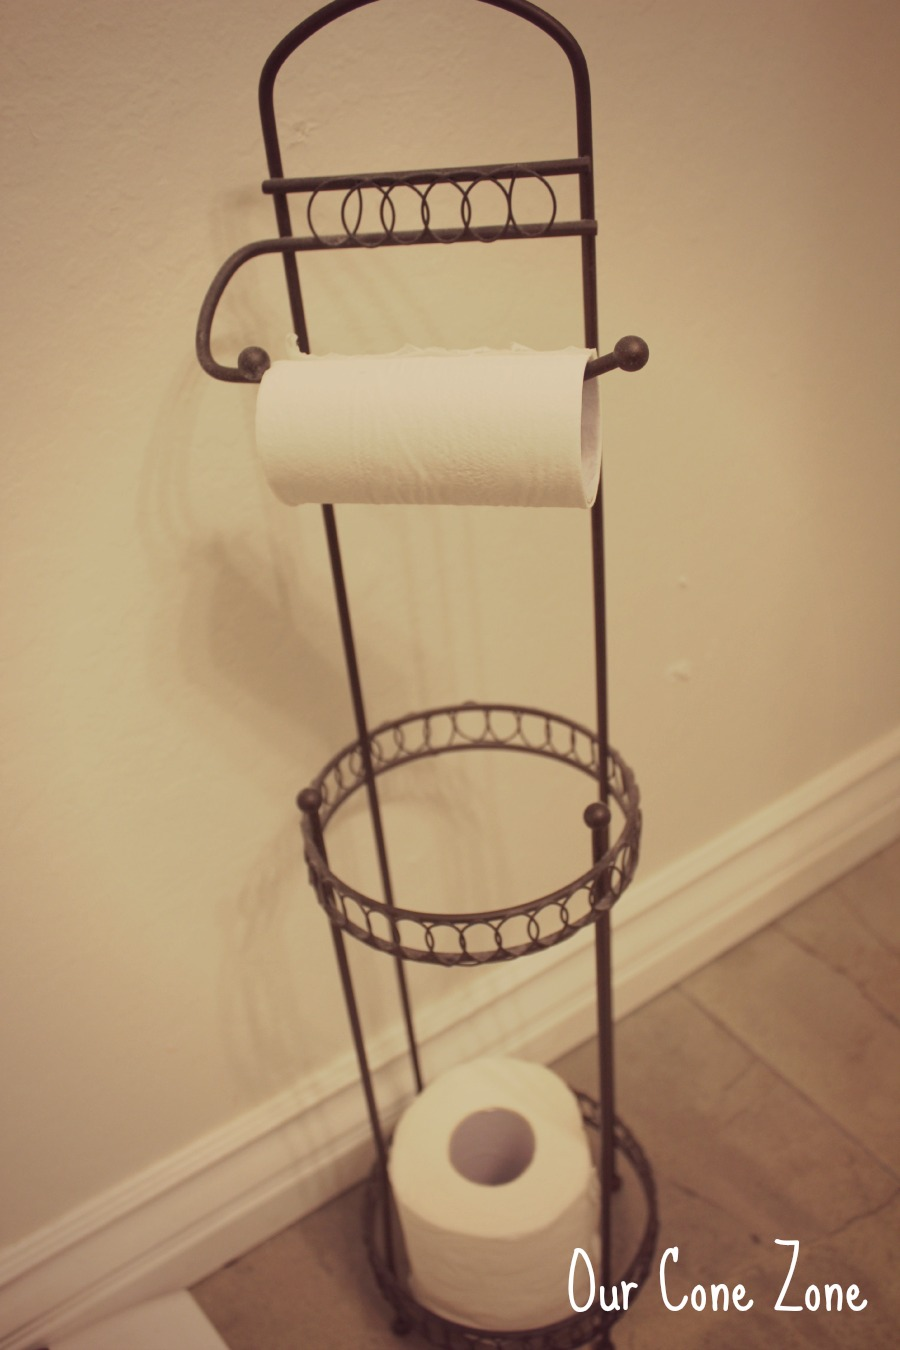 Upstairs Bathroom orb toilet paper holder